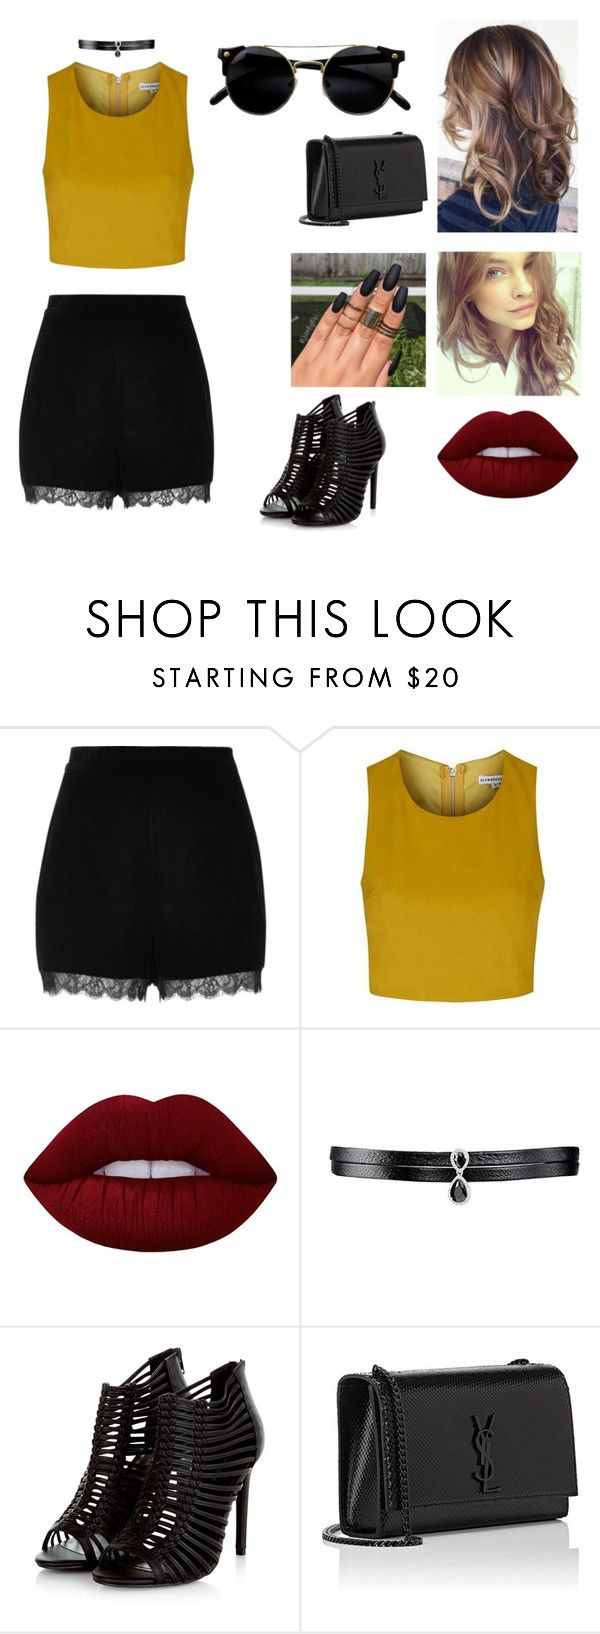 """""""ALAYLM"""" by julia-poldervaart ❤ liked on Polyvore featuring River Island, Topshop, Lime Crime, Fallon, Justin Bieber and Yves Saint Laurent"""